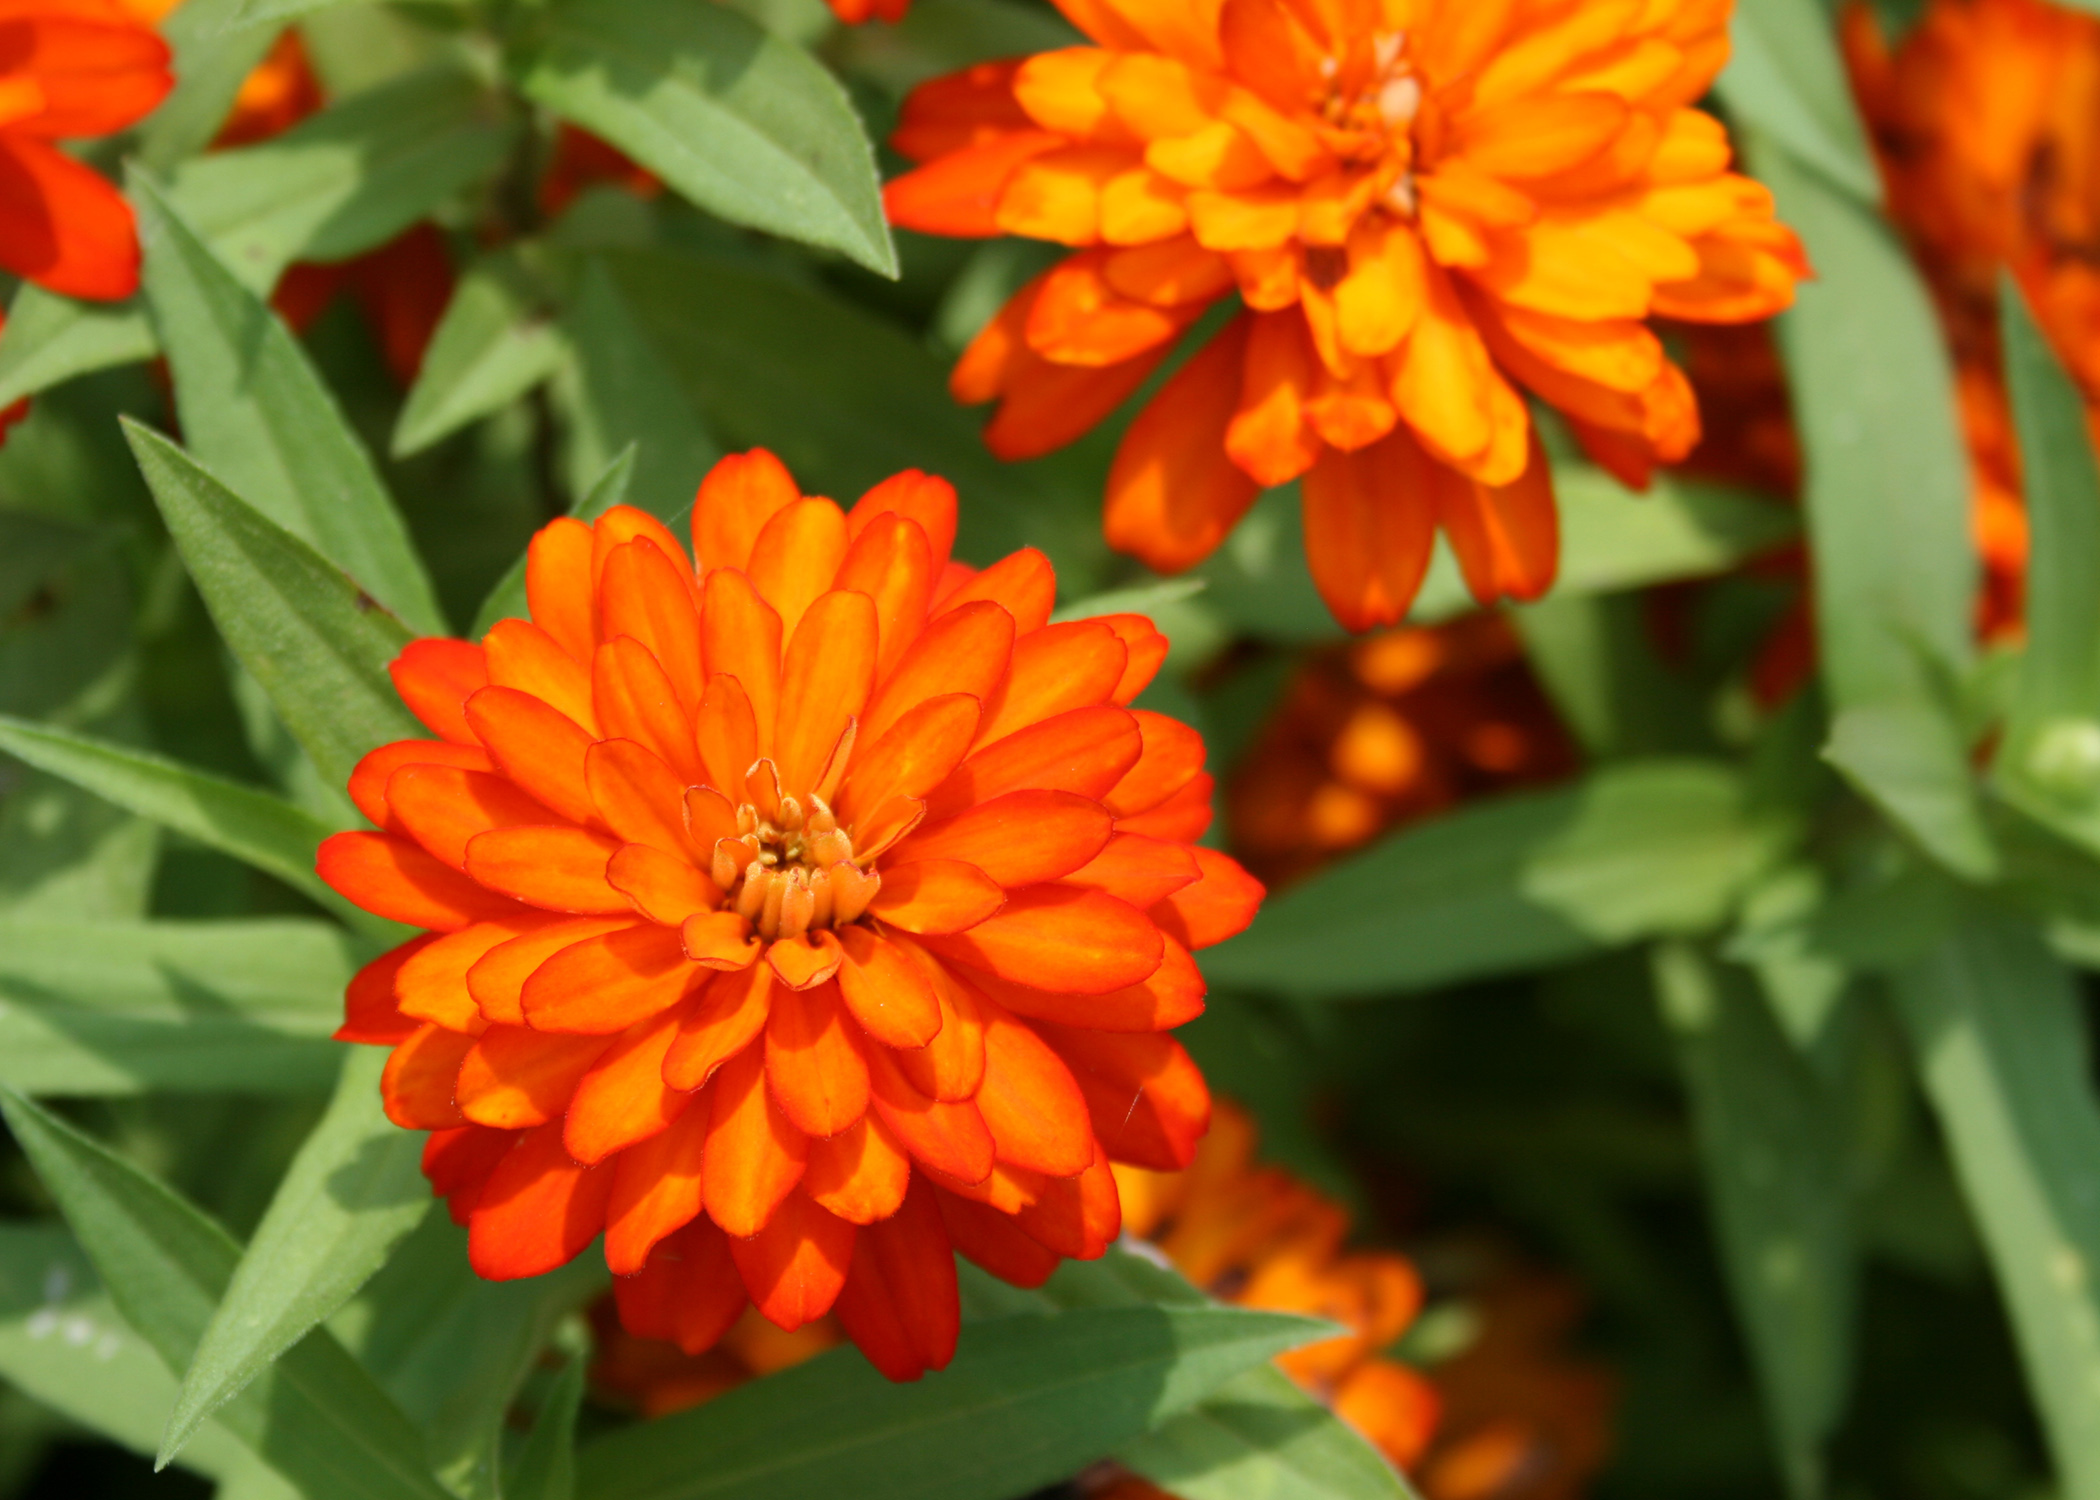 Zinnias are easy to grow bring blooms to summer mississippi state zinnia zahara double fire has robust branching that supports masses and mounds of flowers with very izmirmasajfo